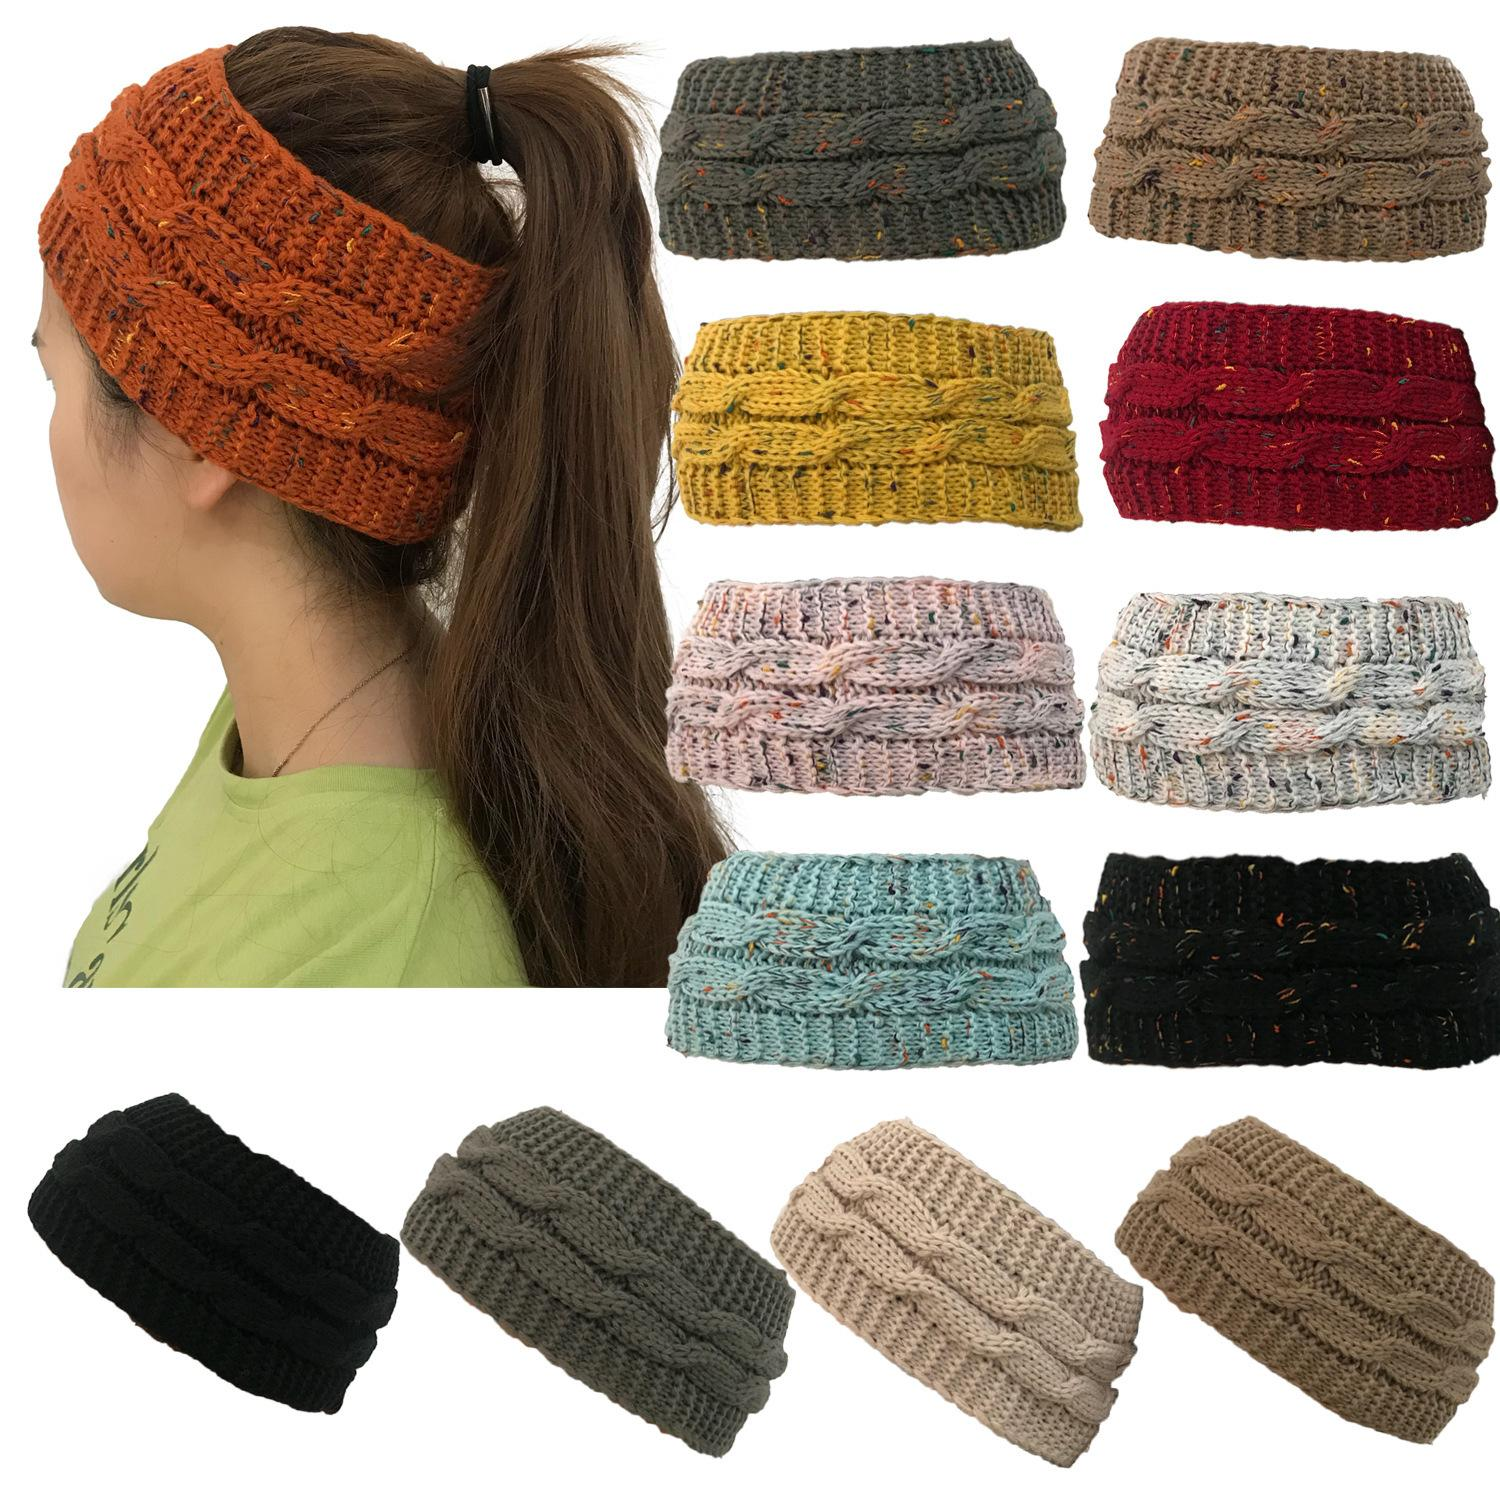 Cc Knitted Hat Headband Women Winter Sports Headwrap Hairband Turban Head  Band Ear Warmer Crochet Open Top Skull Caps Gga998 Black Baseball Cap  Knitted Hats ... 51afce4788c